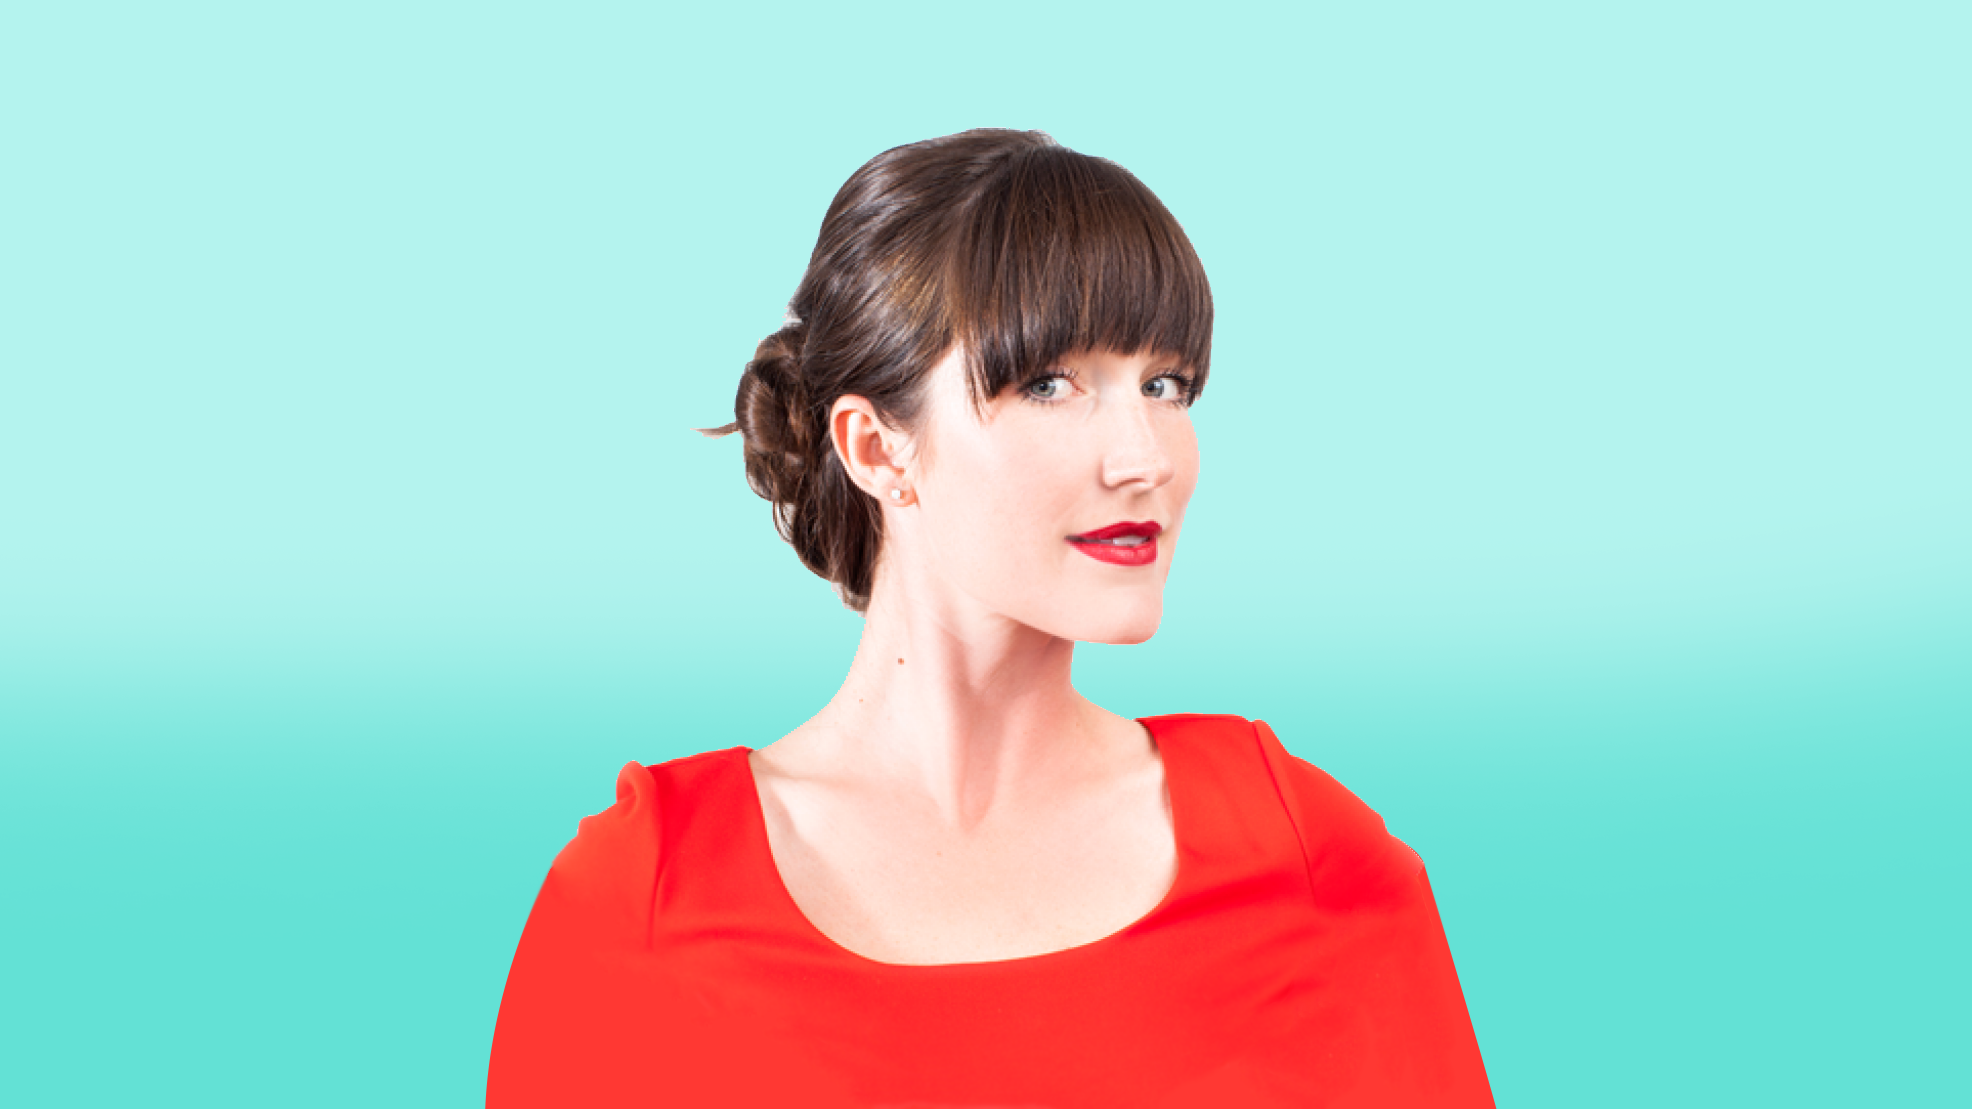 Regan McGarth CPA CA. Professional woman, red blouse, blue background